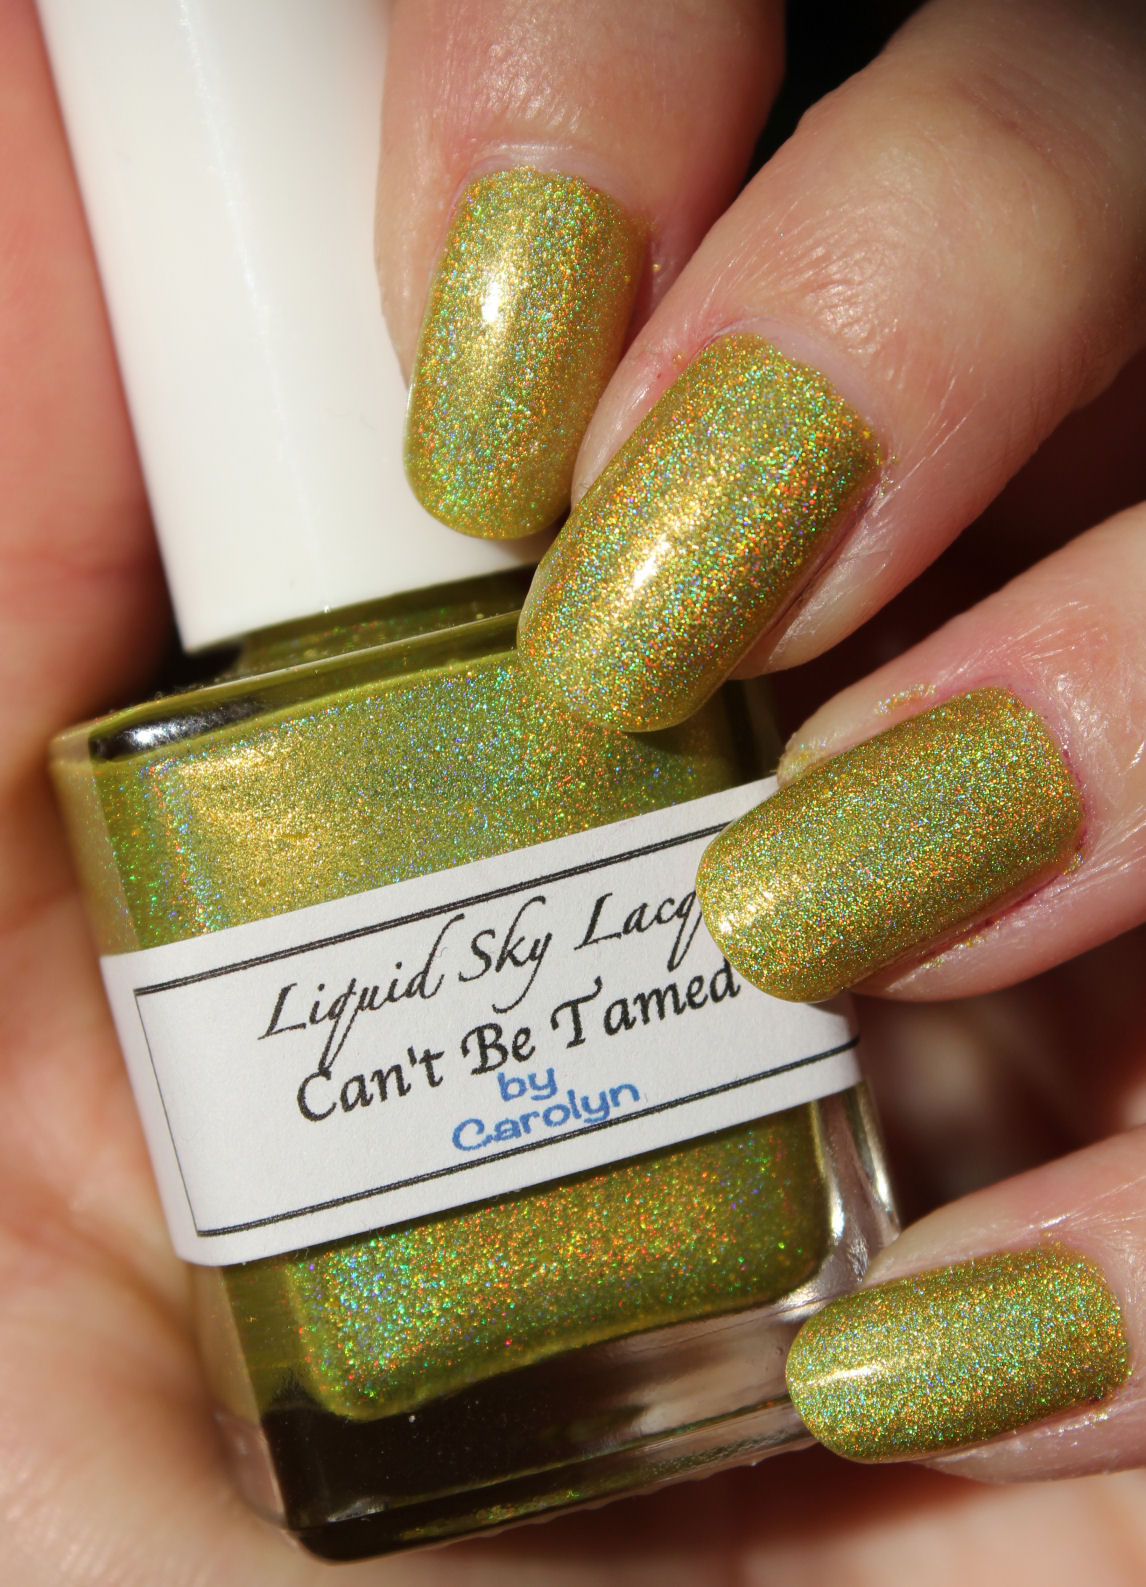 http://lacquediction.blogspot.de/2014/04/liquid-sky-lacquer-cant-be-tamed.html